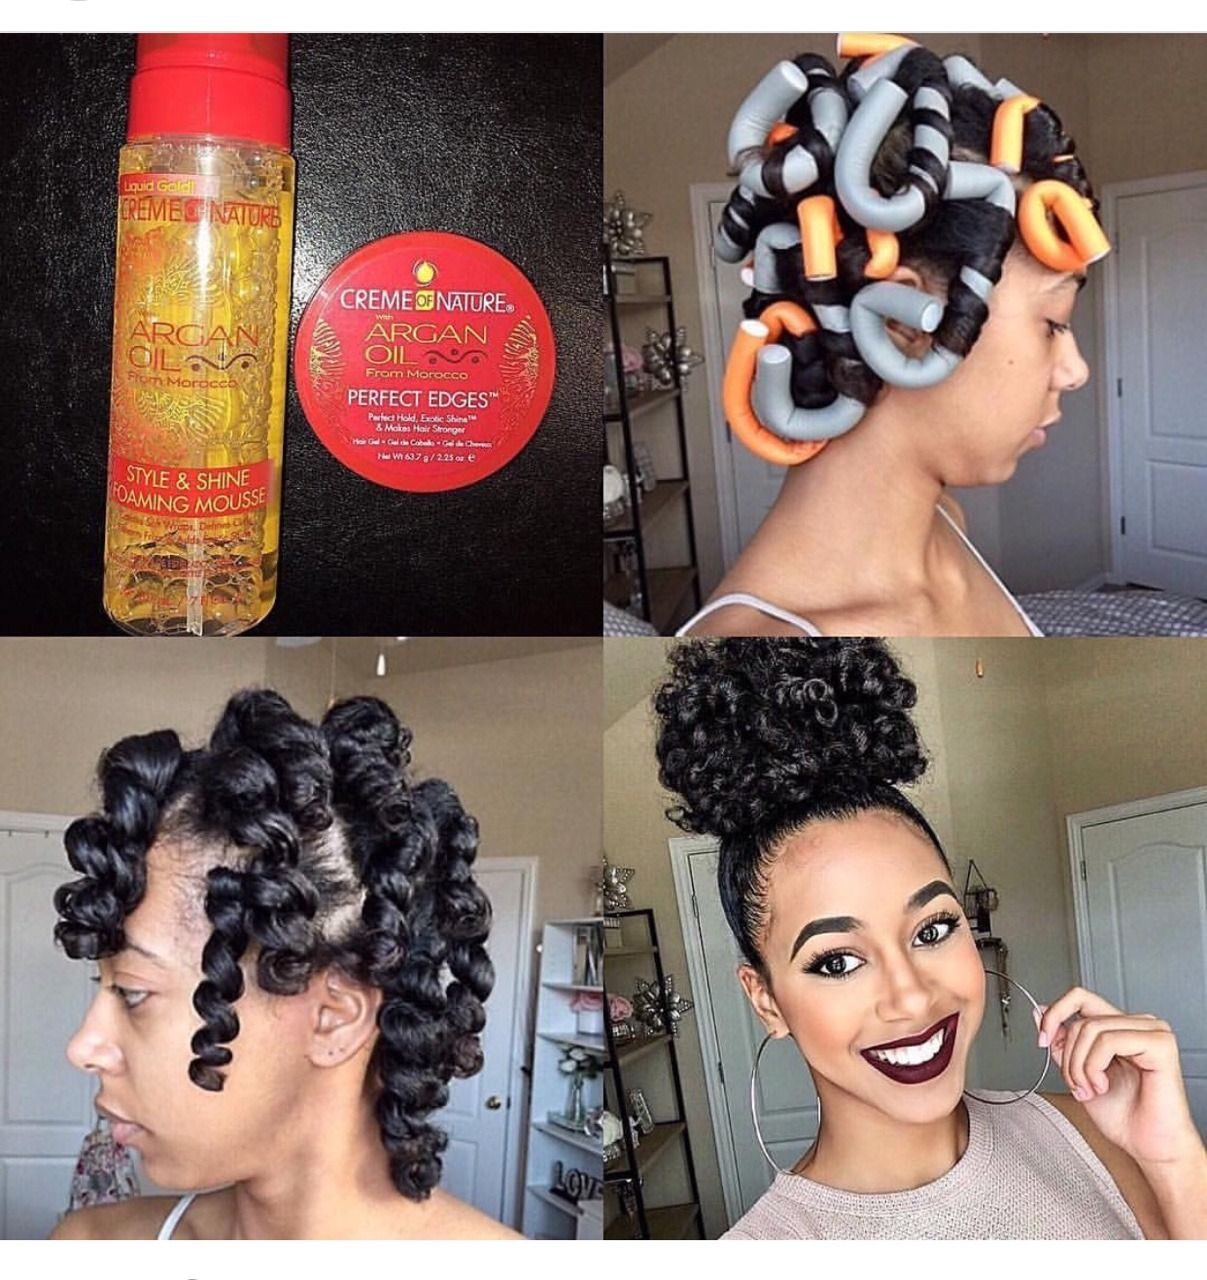 This Blog Is All About Natural Black Hair Hair Tips Natural Hair Products Hair Styles As Well As Pro Curly Hair Styles Naturally Hair Hacks Natural Hair Tips